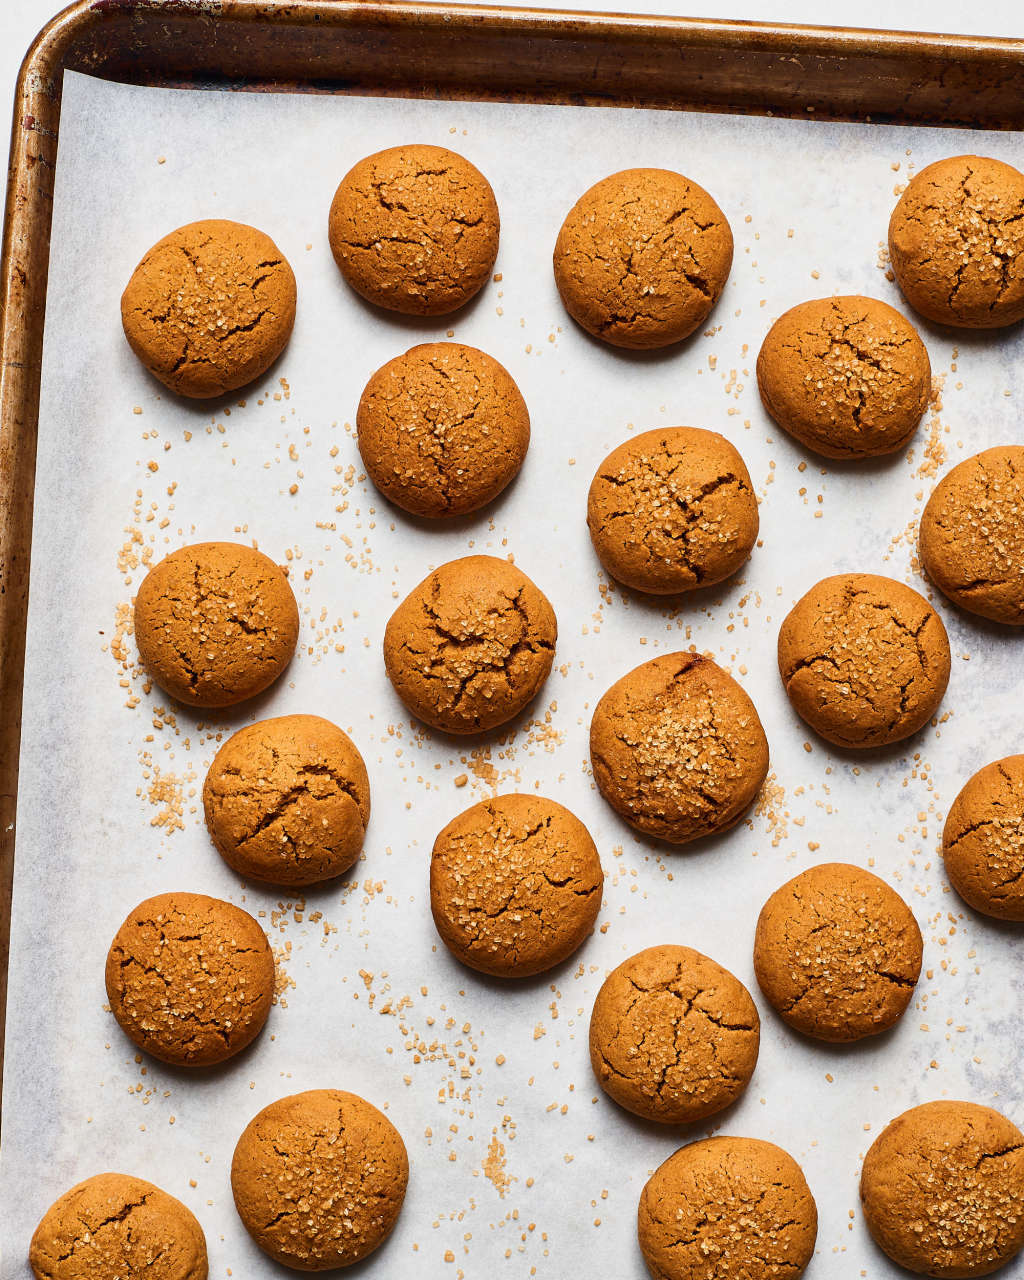 A Simple Trick for Even Better Gingerbread Cookies